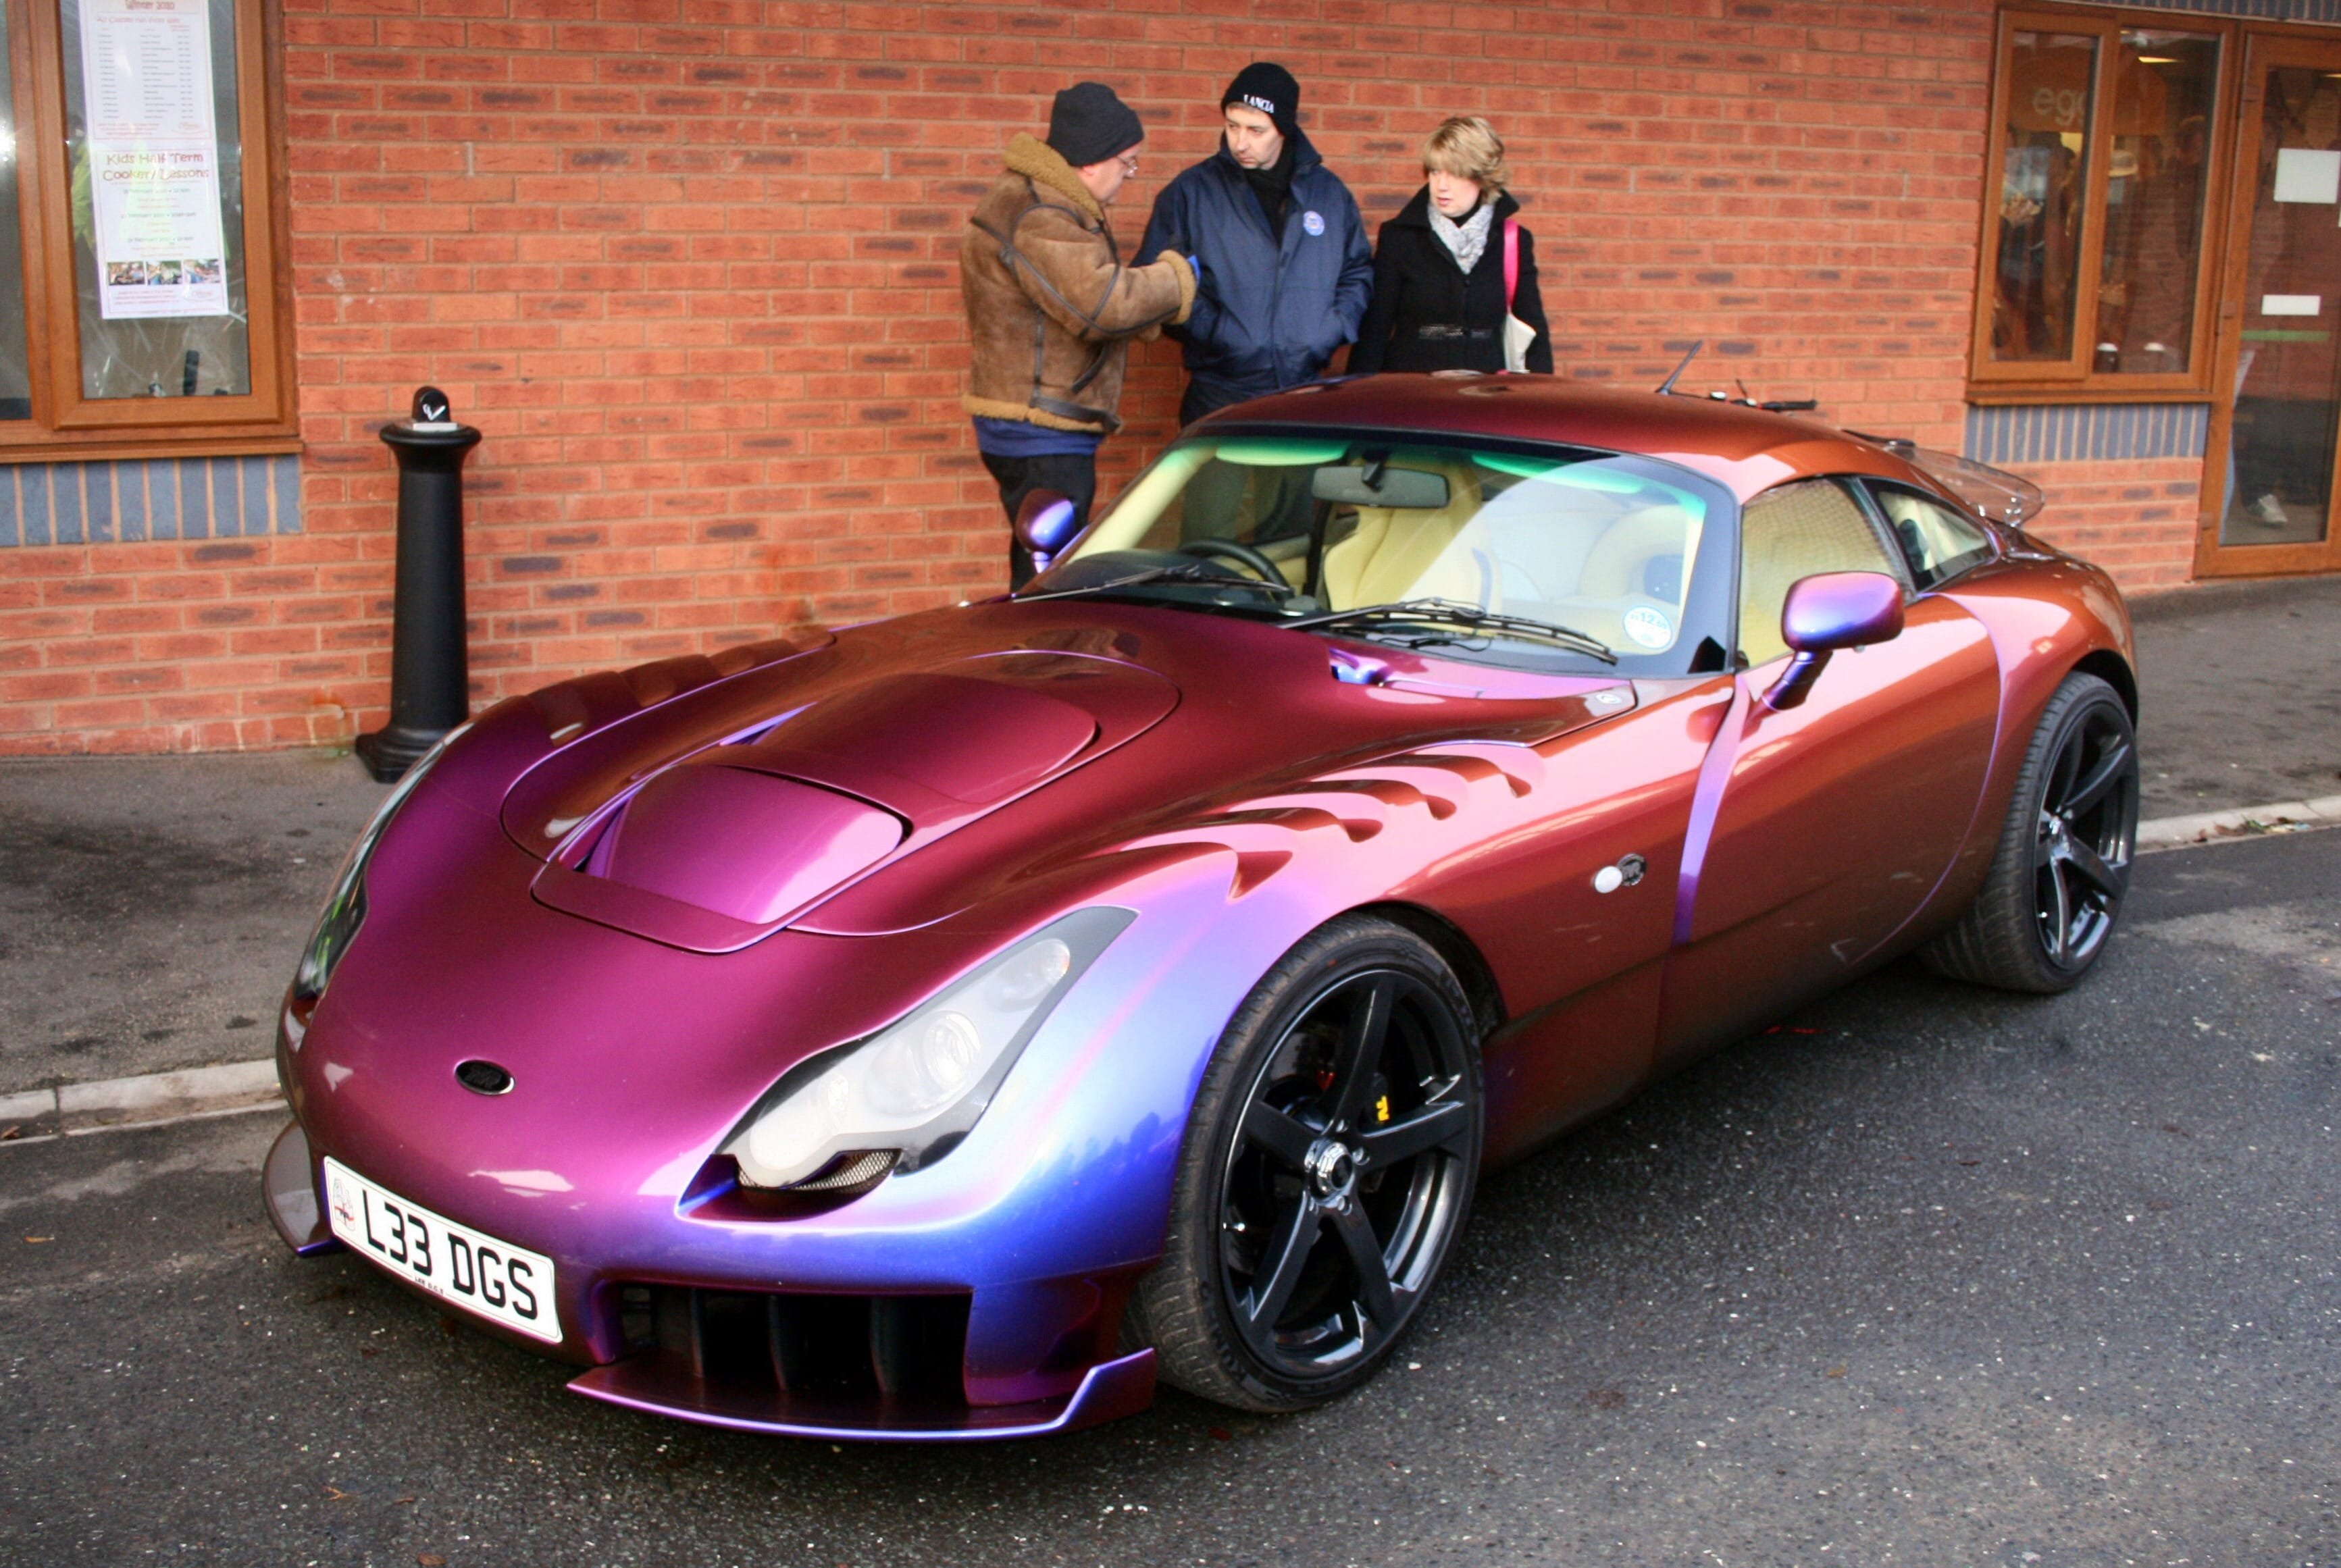 2005 TVR Sagaris widescreen wallpapers